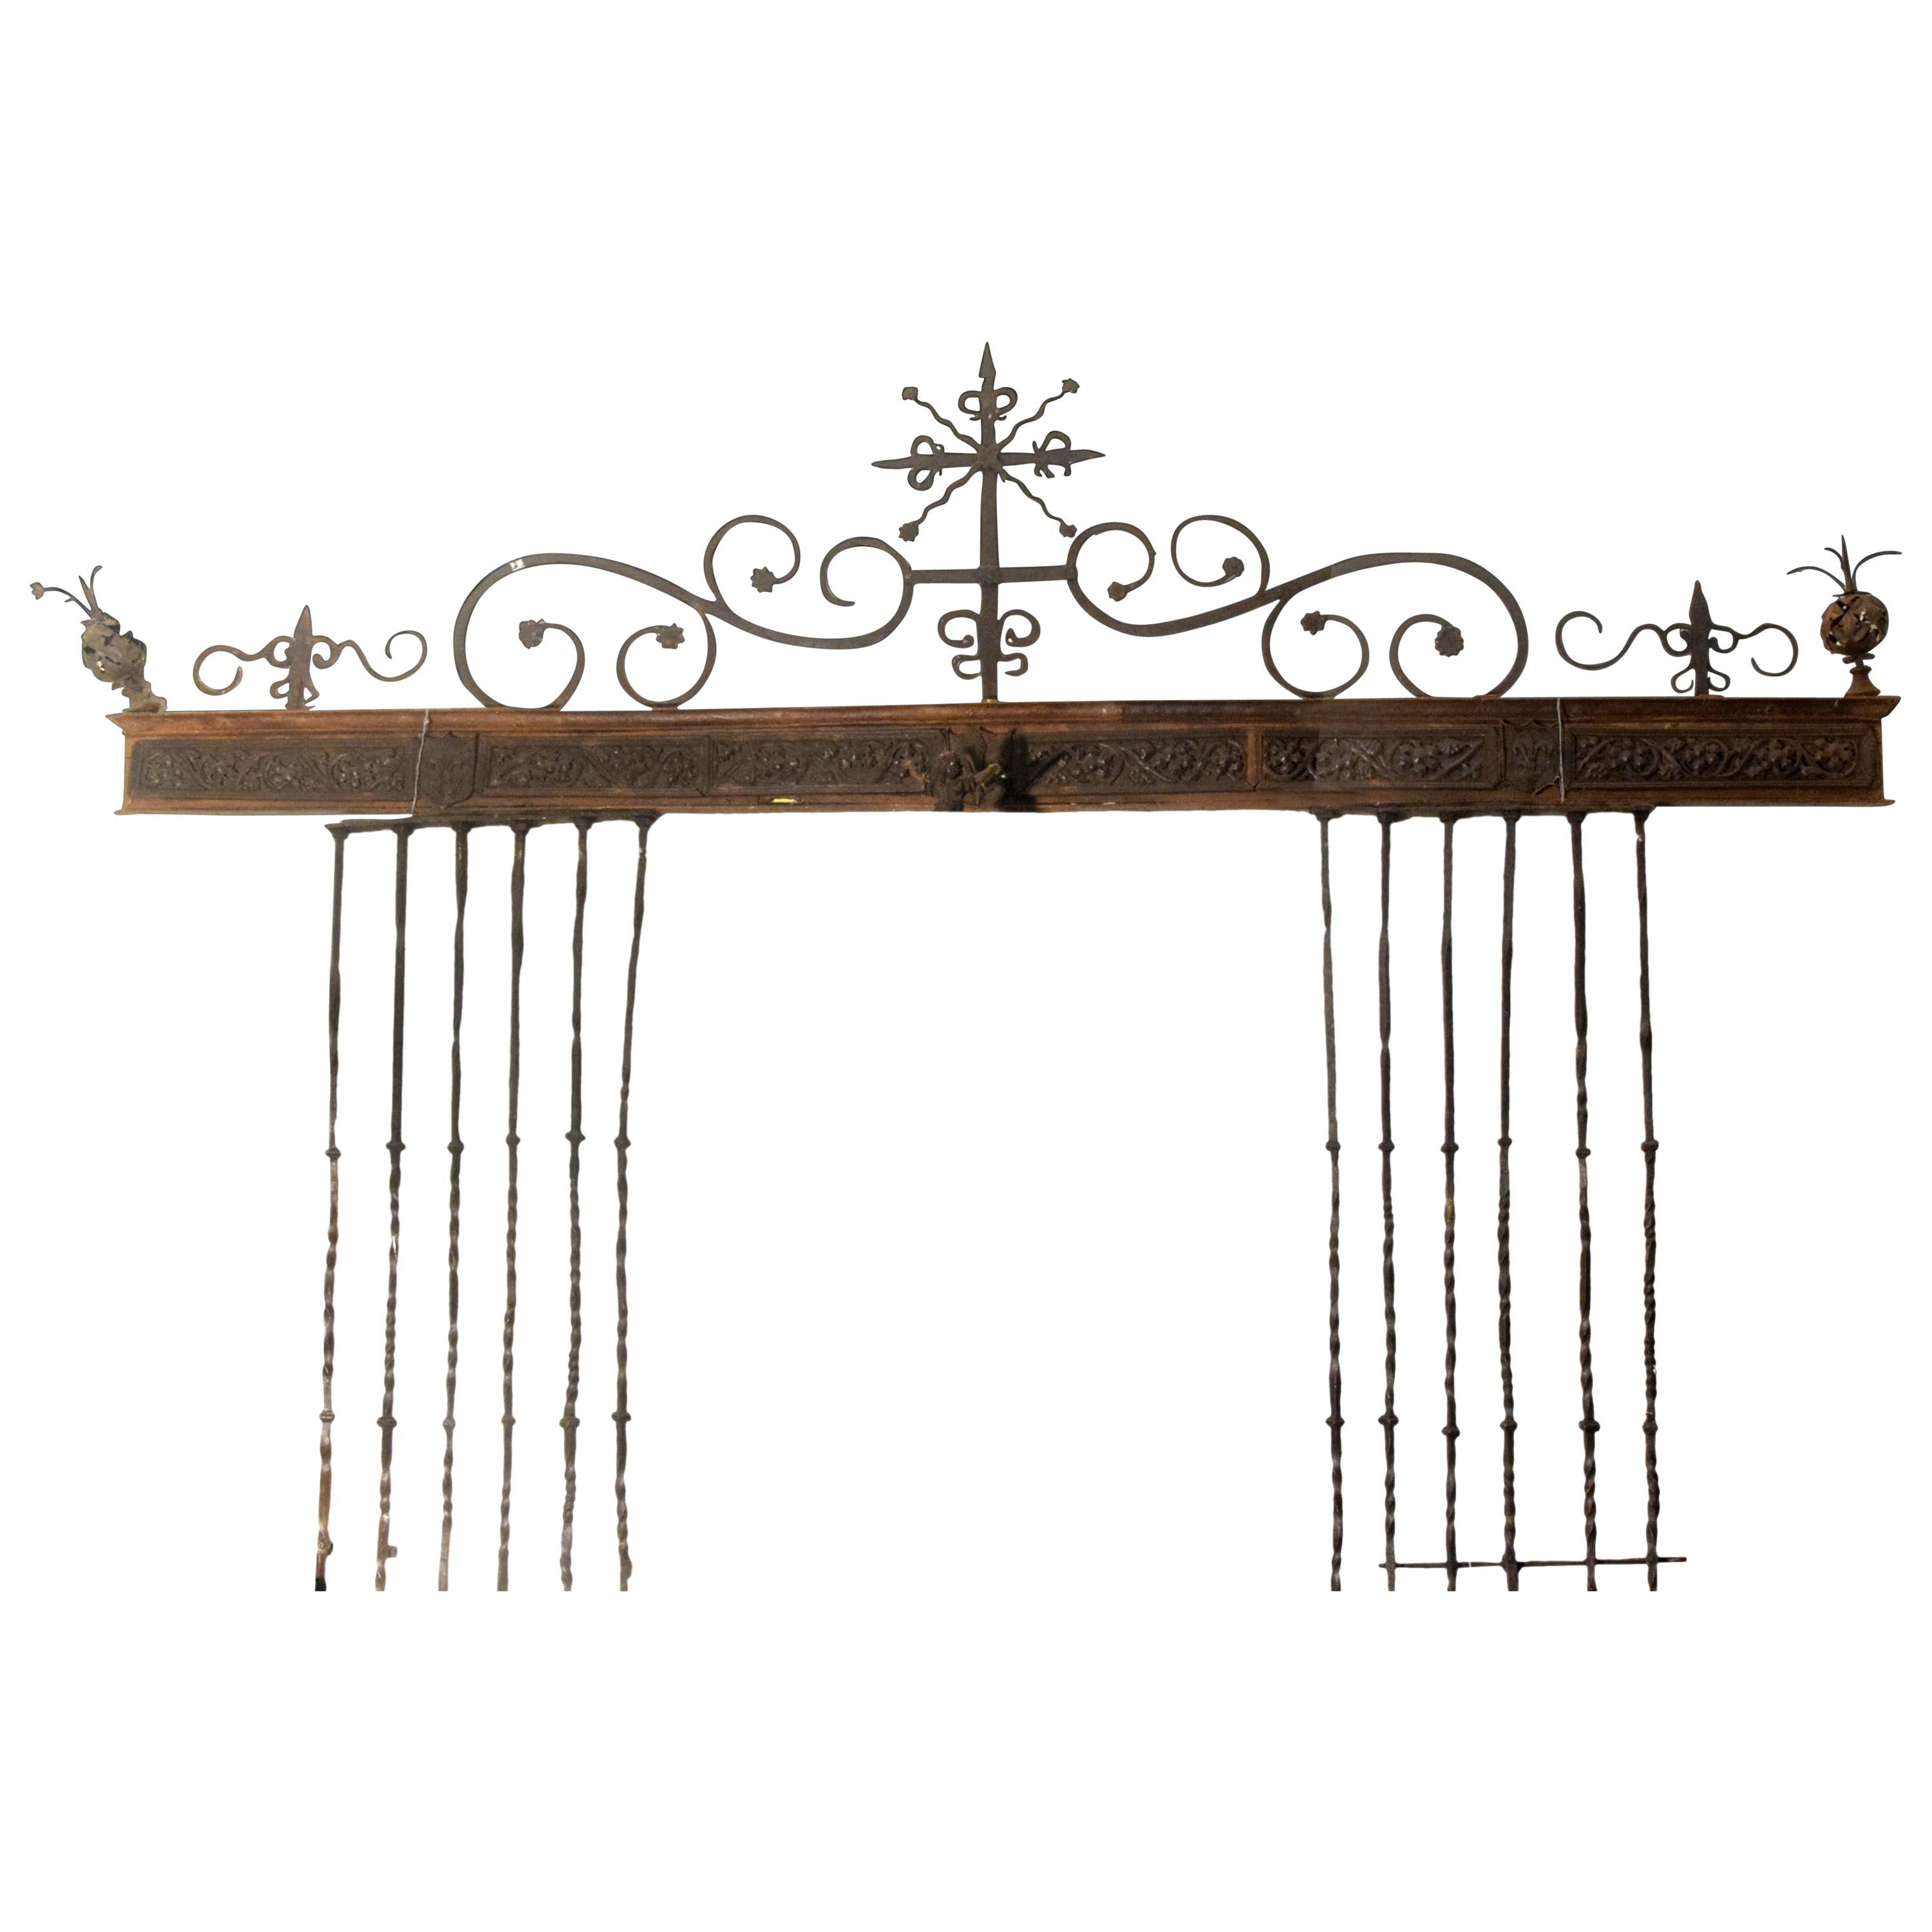 Wrought Iron Grille, Spain, 16th Century